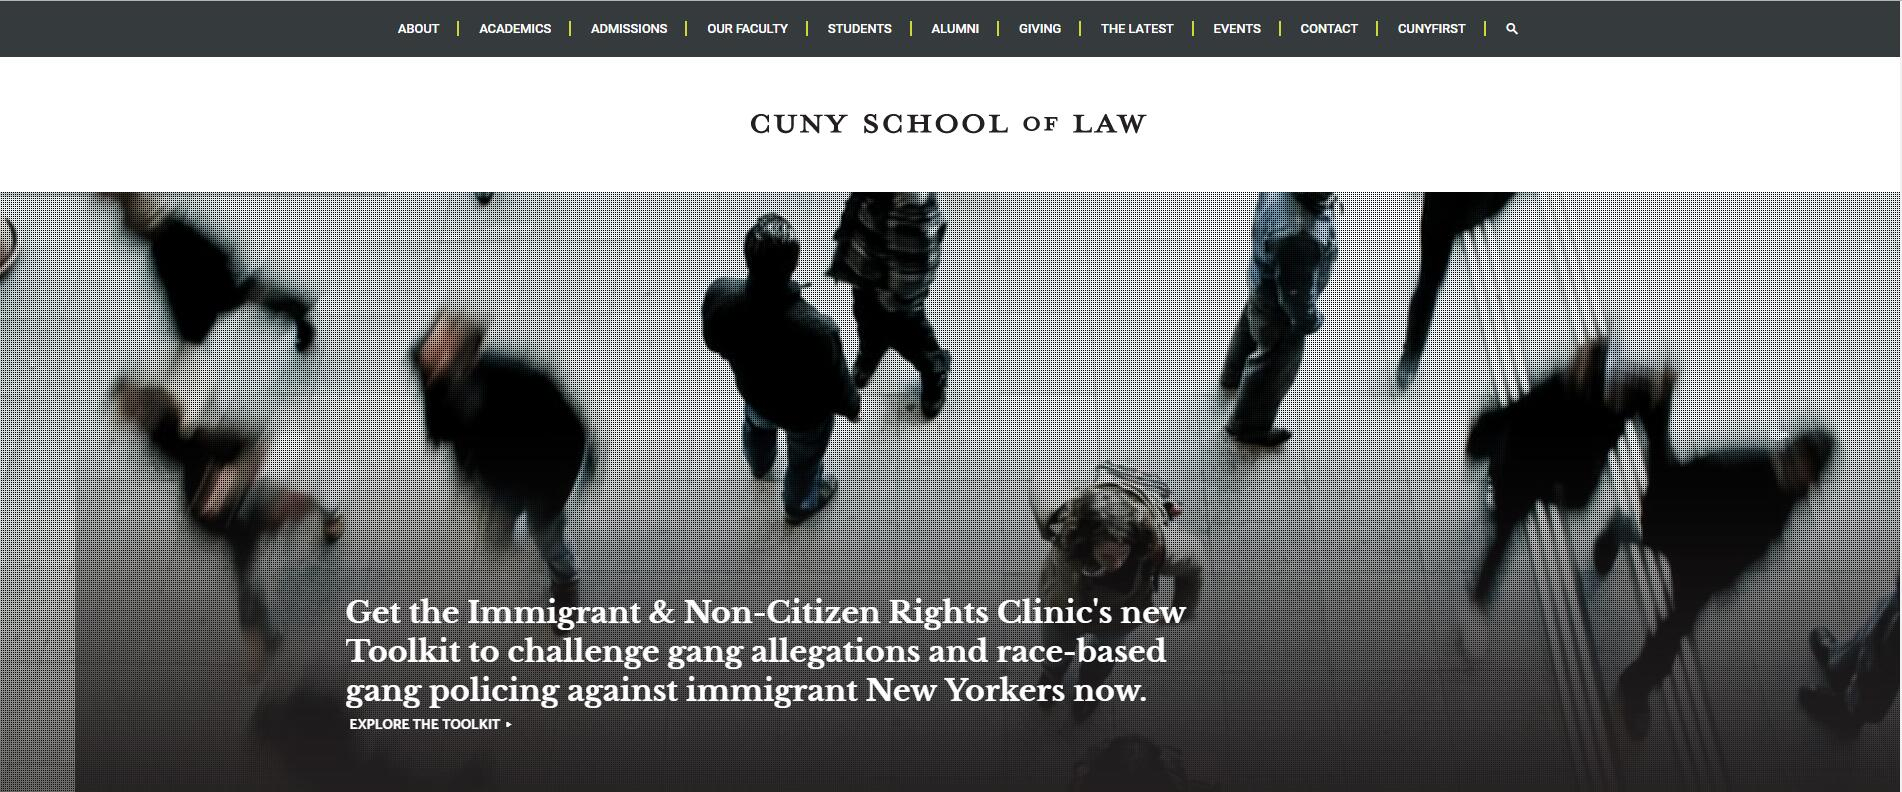 The School of Law at CUNY School of Law